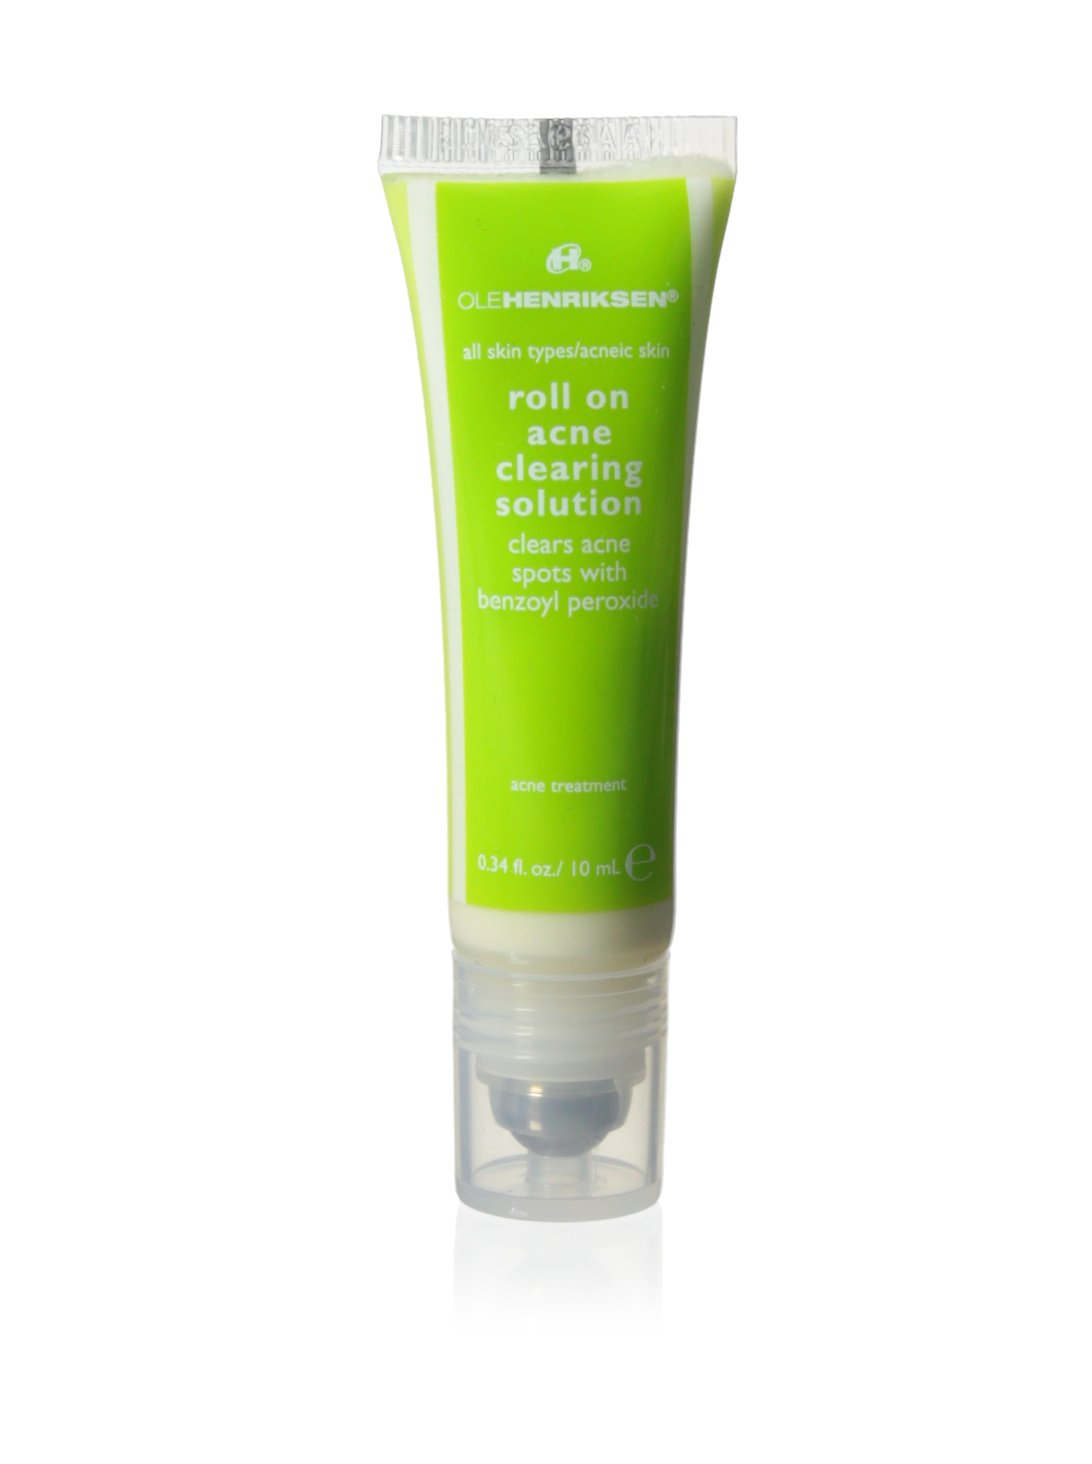 Roll On Acne Clearing Solution (For All Skin Types-Acneic Skin) - 10ml-0.34oz